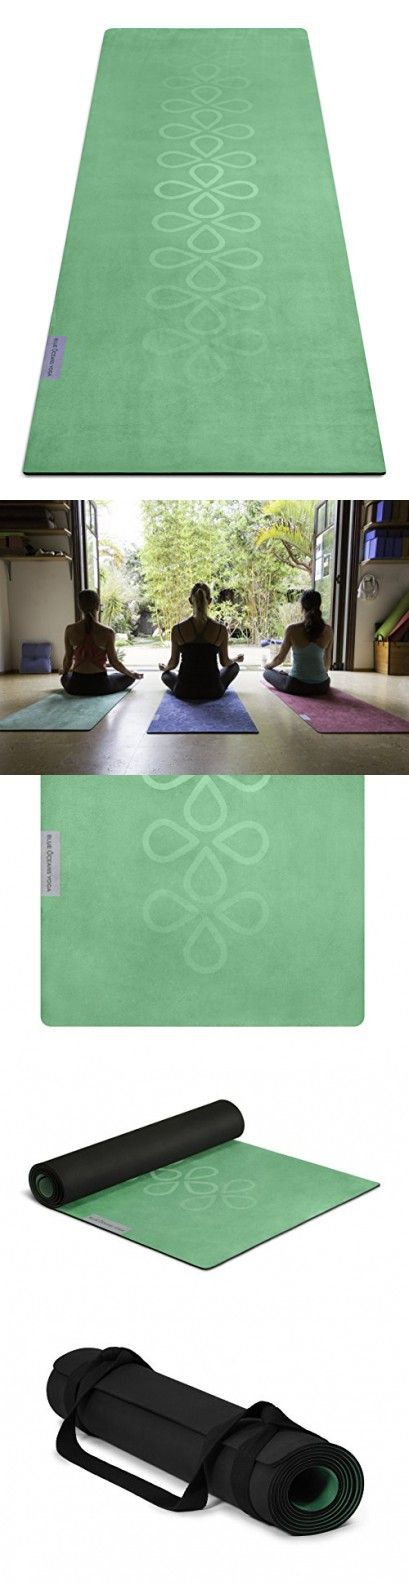 Blue Oceans Yoga - Bikram yoga mat and towel combo 4.5mm / 2-in-1 product / extra sticky, thick, anti-slip multi-purpose mat / free carrying strap